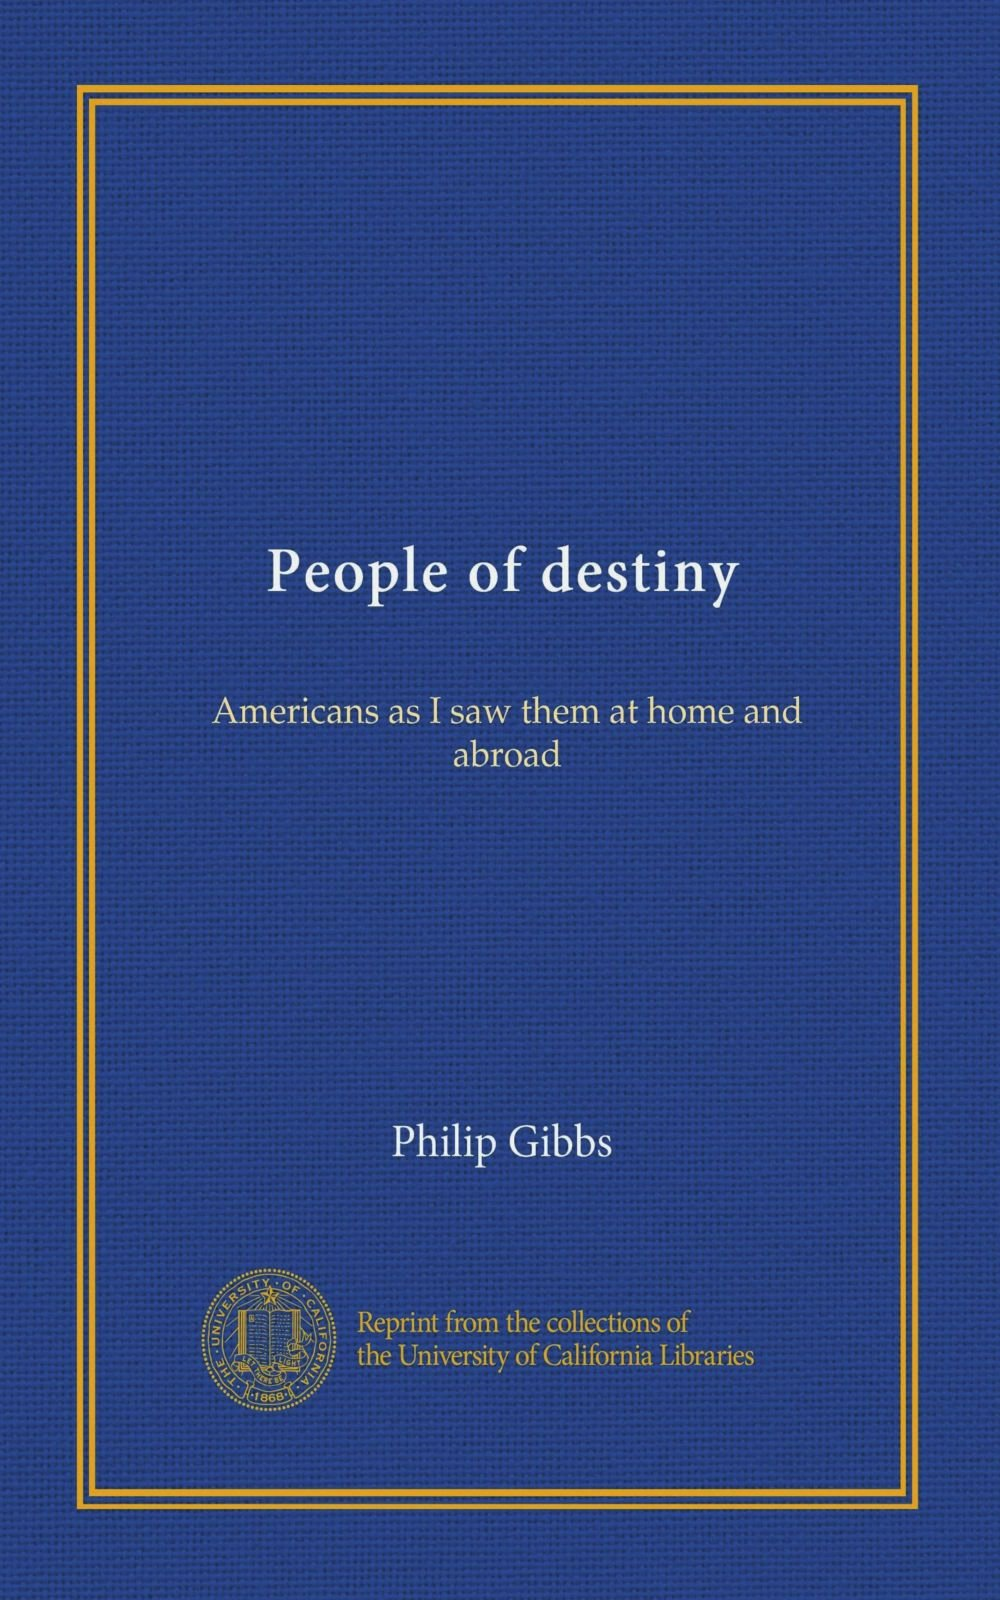 Download People of destiny: Americans as I saw them at home and abroad PDF